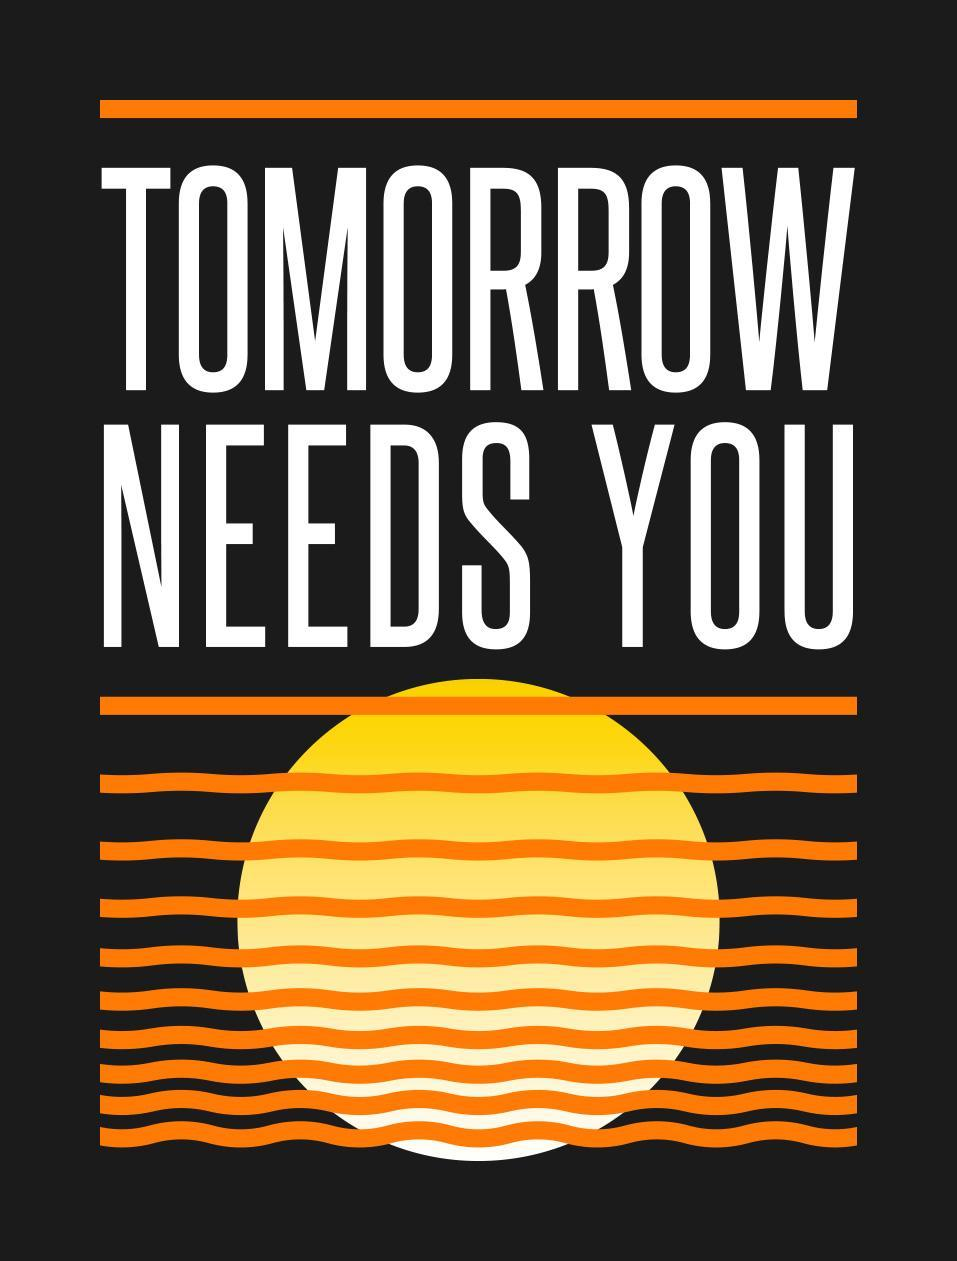 Tomorrow Needs You!